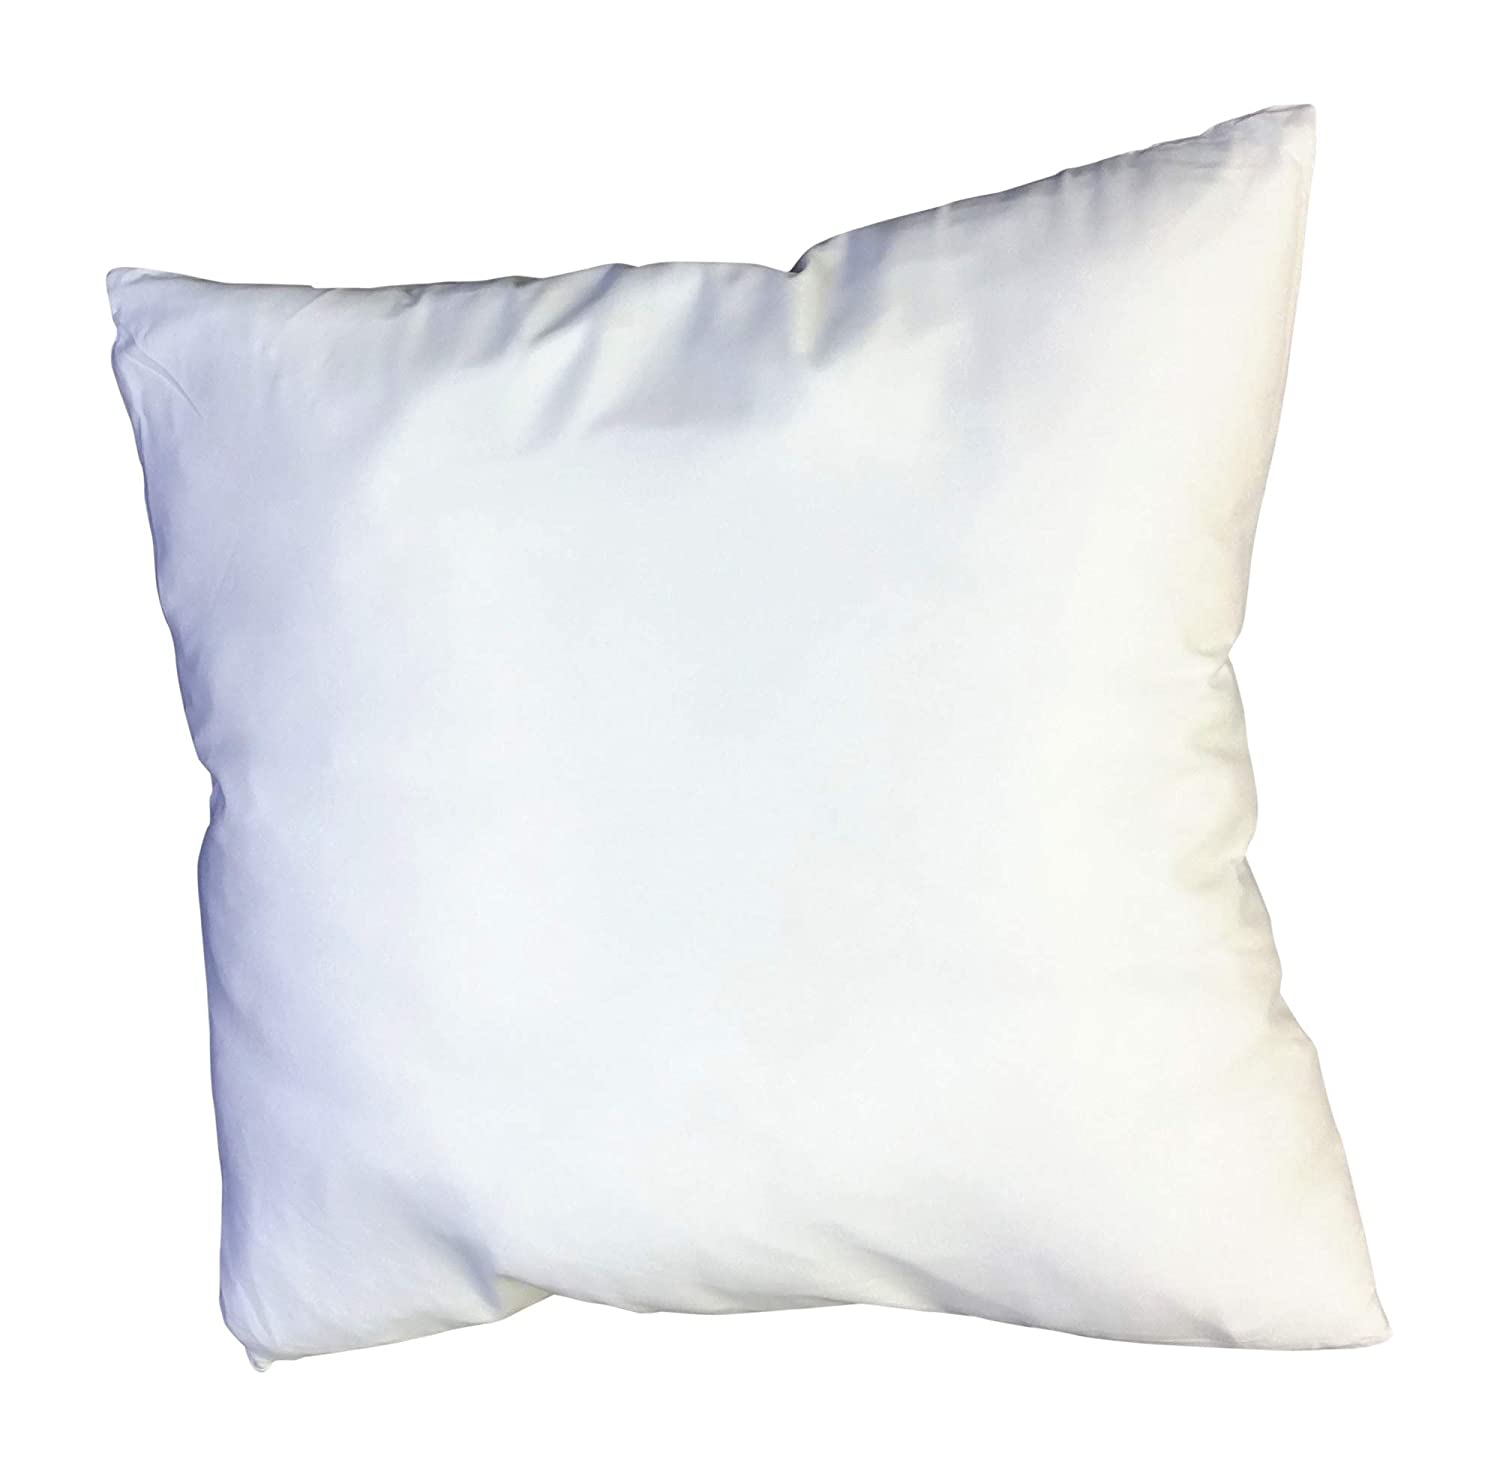 Two - 400 Thread Count - 26 x 26 Square-Down Alternative - Euro Pillow w/ Removable Zippered Protector by Web Linens Inc 26x26